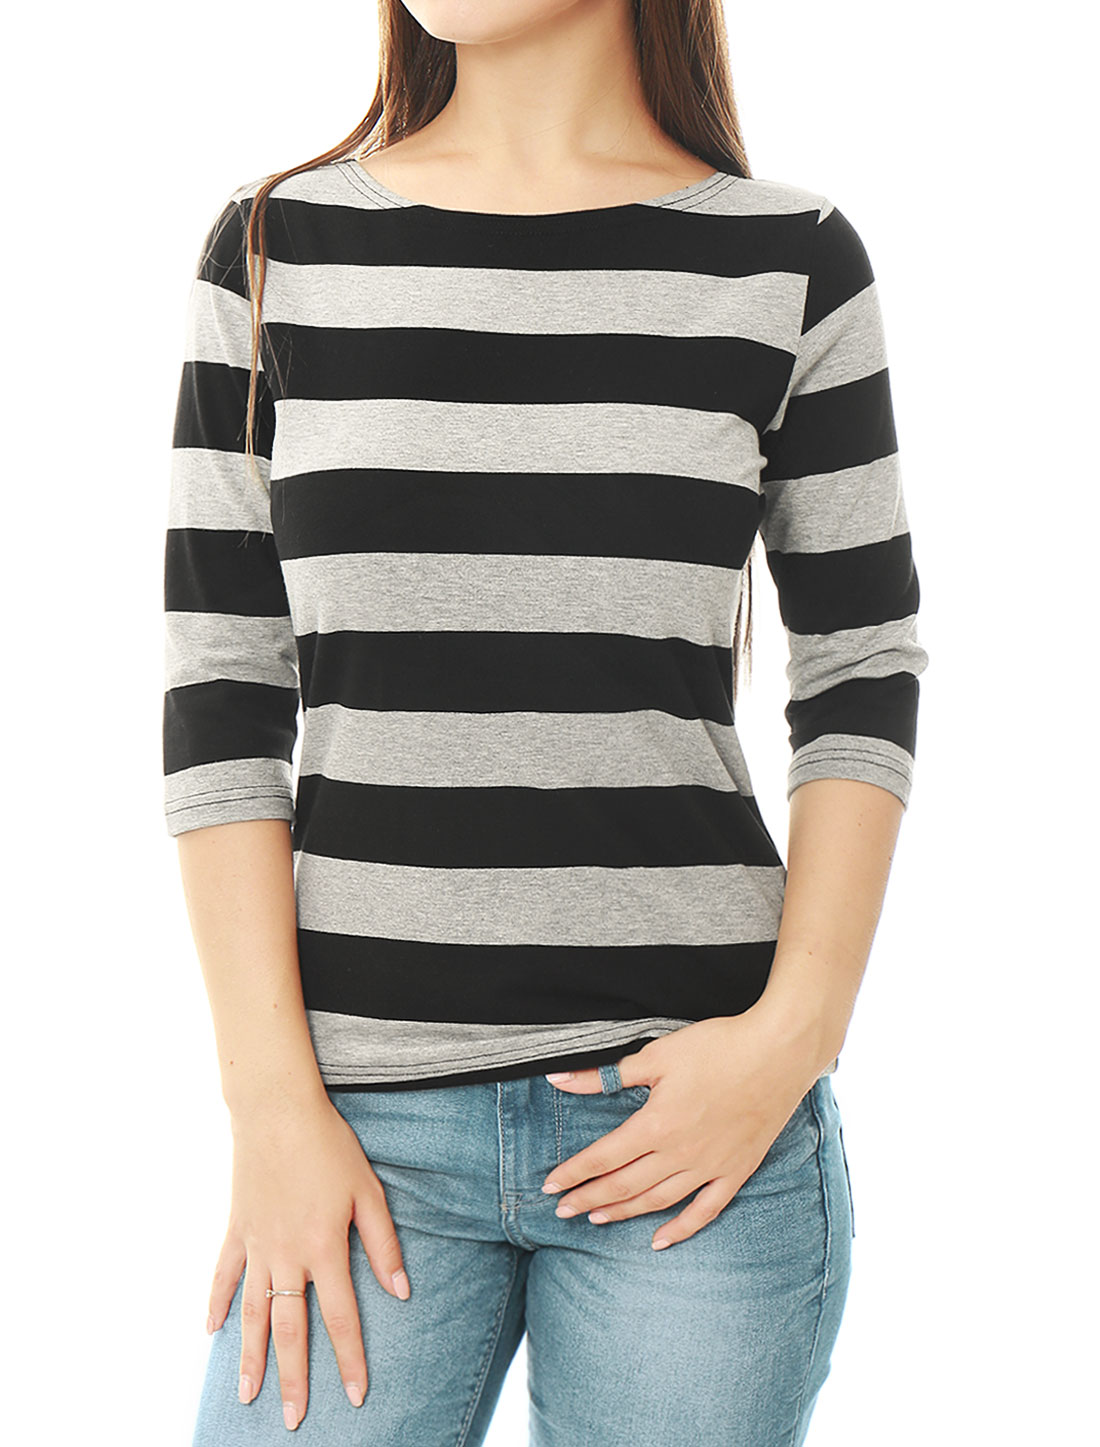 Women Elbow Sleeves Boat Neck Slim Fit Striped Tee Black XS